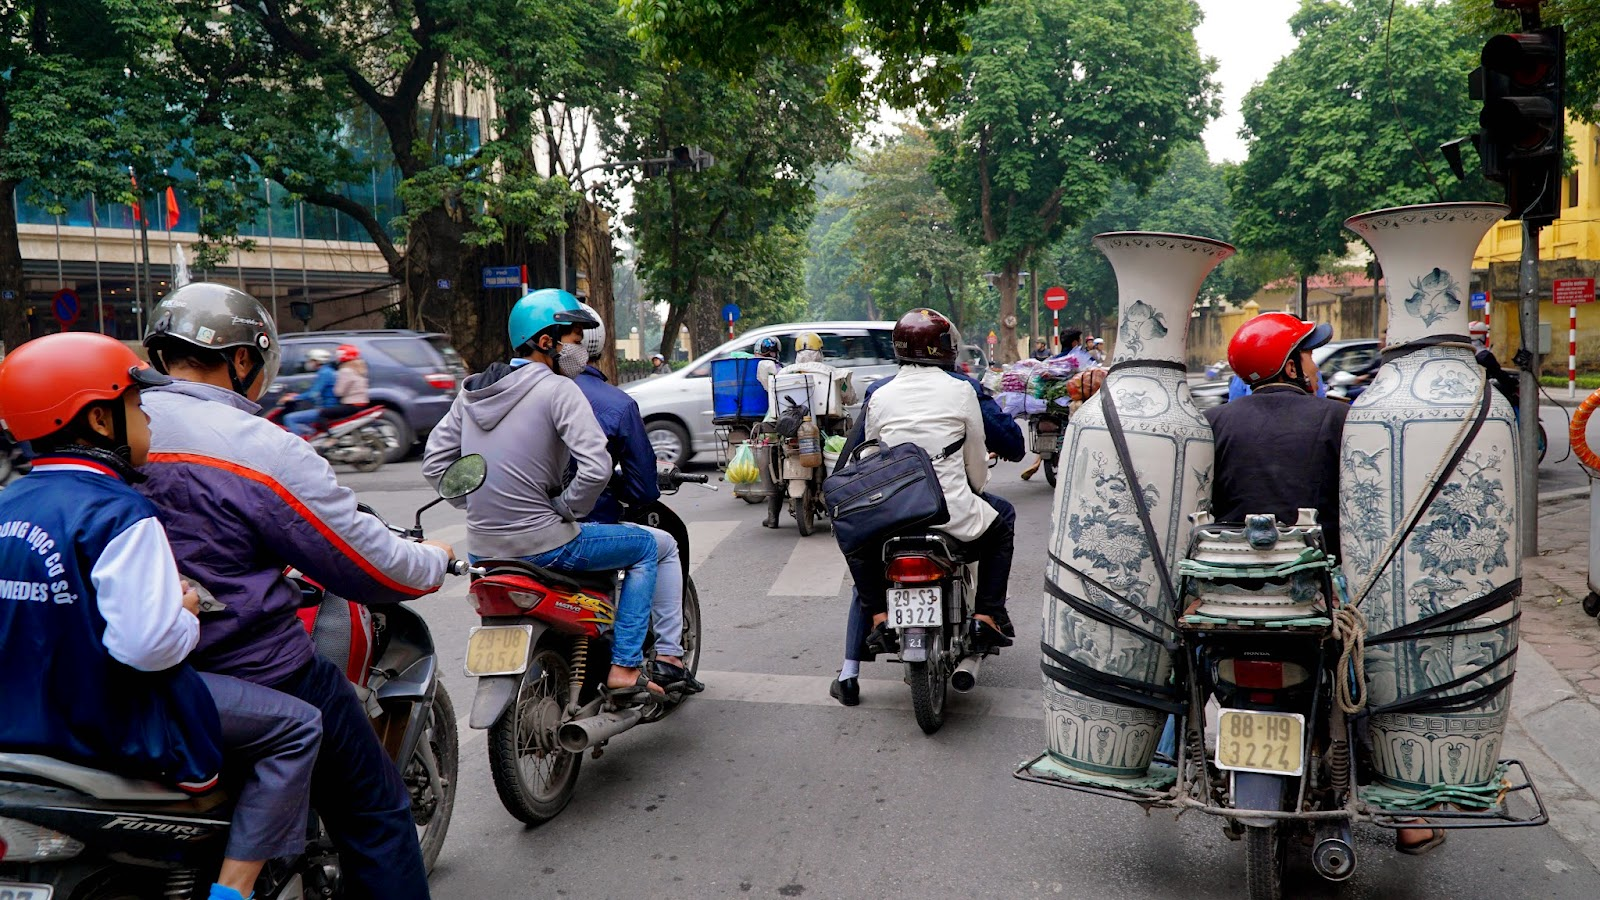 Motorcycling around Hanoi. Keep your eyes on the road and wits about you as traffic in Hanoi can be pretty unpredictable